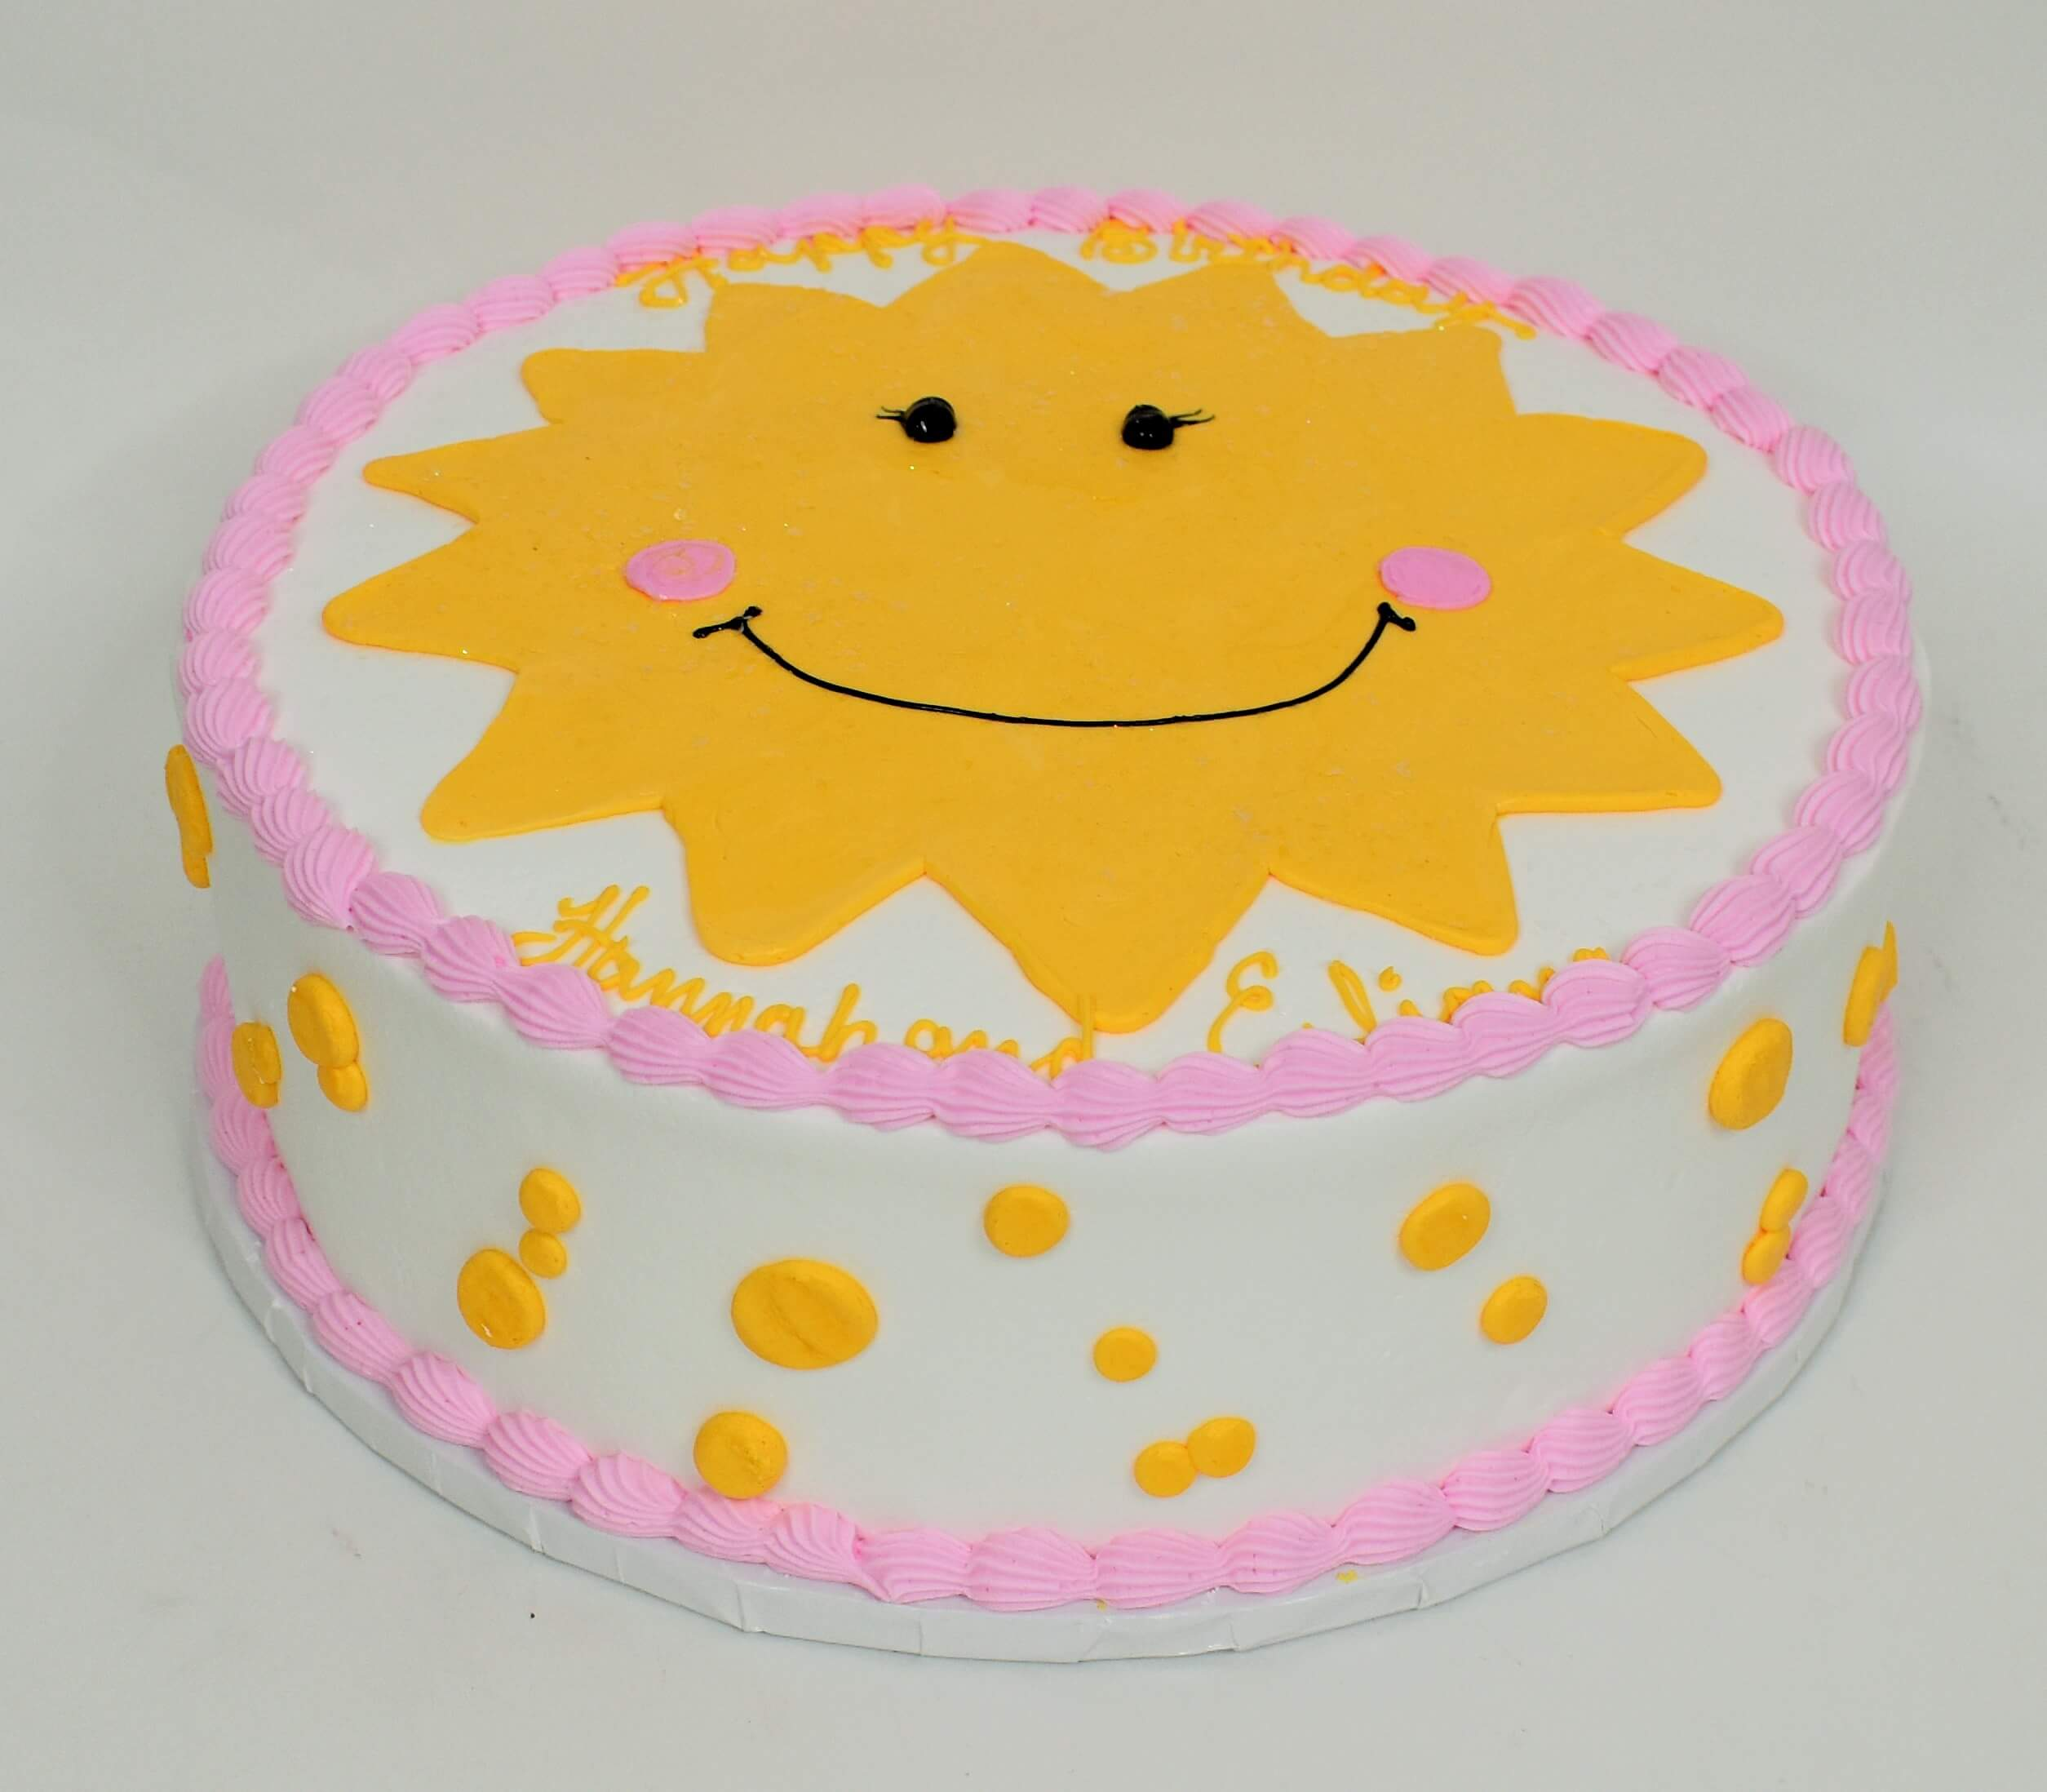 MaArthur's Bakery Custom Cake With Smiling Sunshine, Yellow Polka Dots